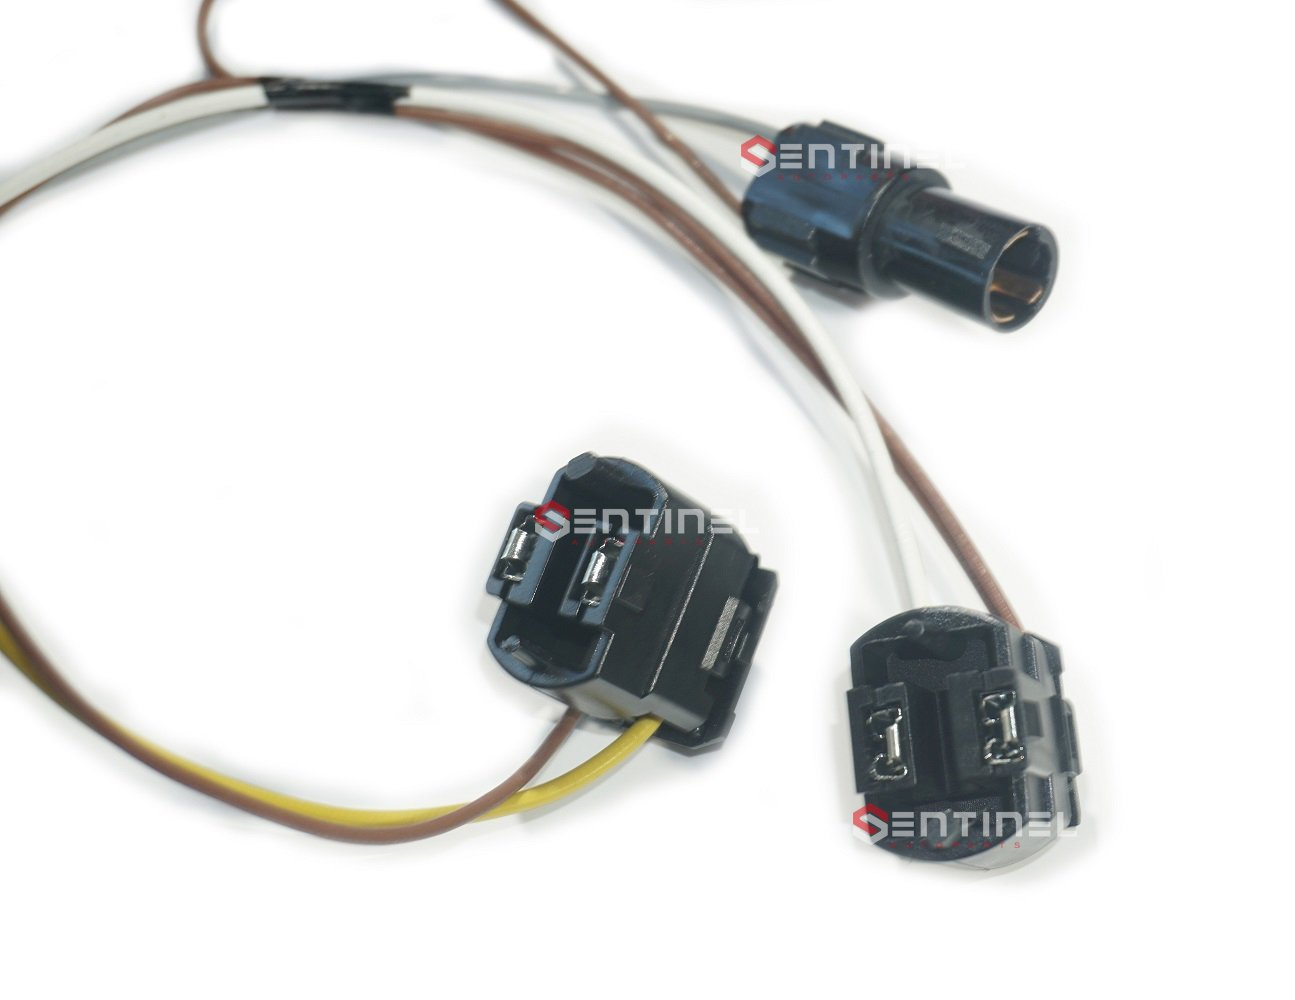 61JhXijC6DL._SL1295_ amazon com sentinel parts b360 99 03 mercedes w210 headlight wire OEM Wiring Harness Connectors at fashall.co